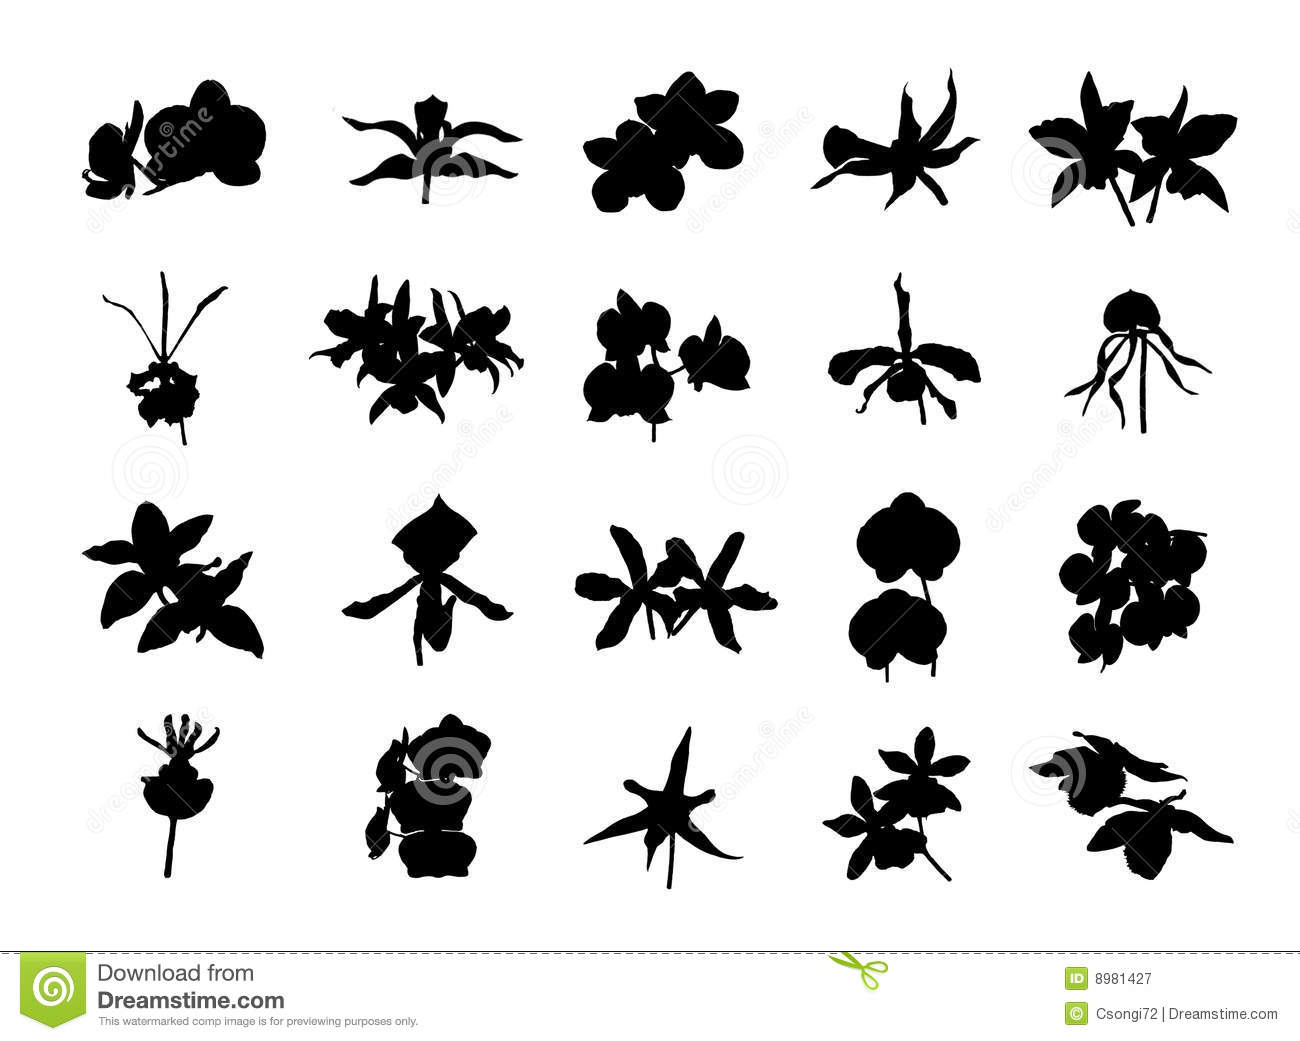 Orchid Silhouettes Royalty Free Stock Photography